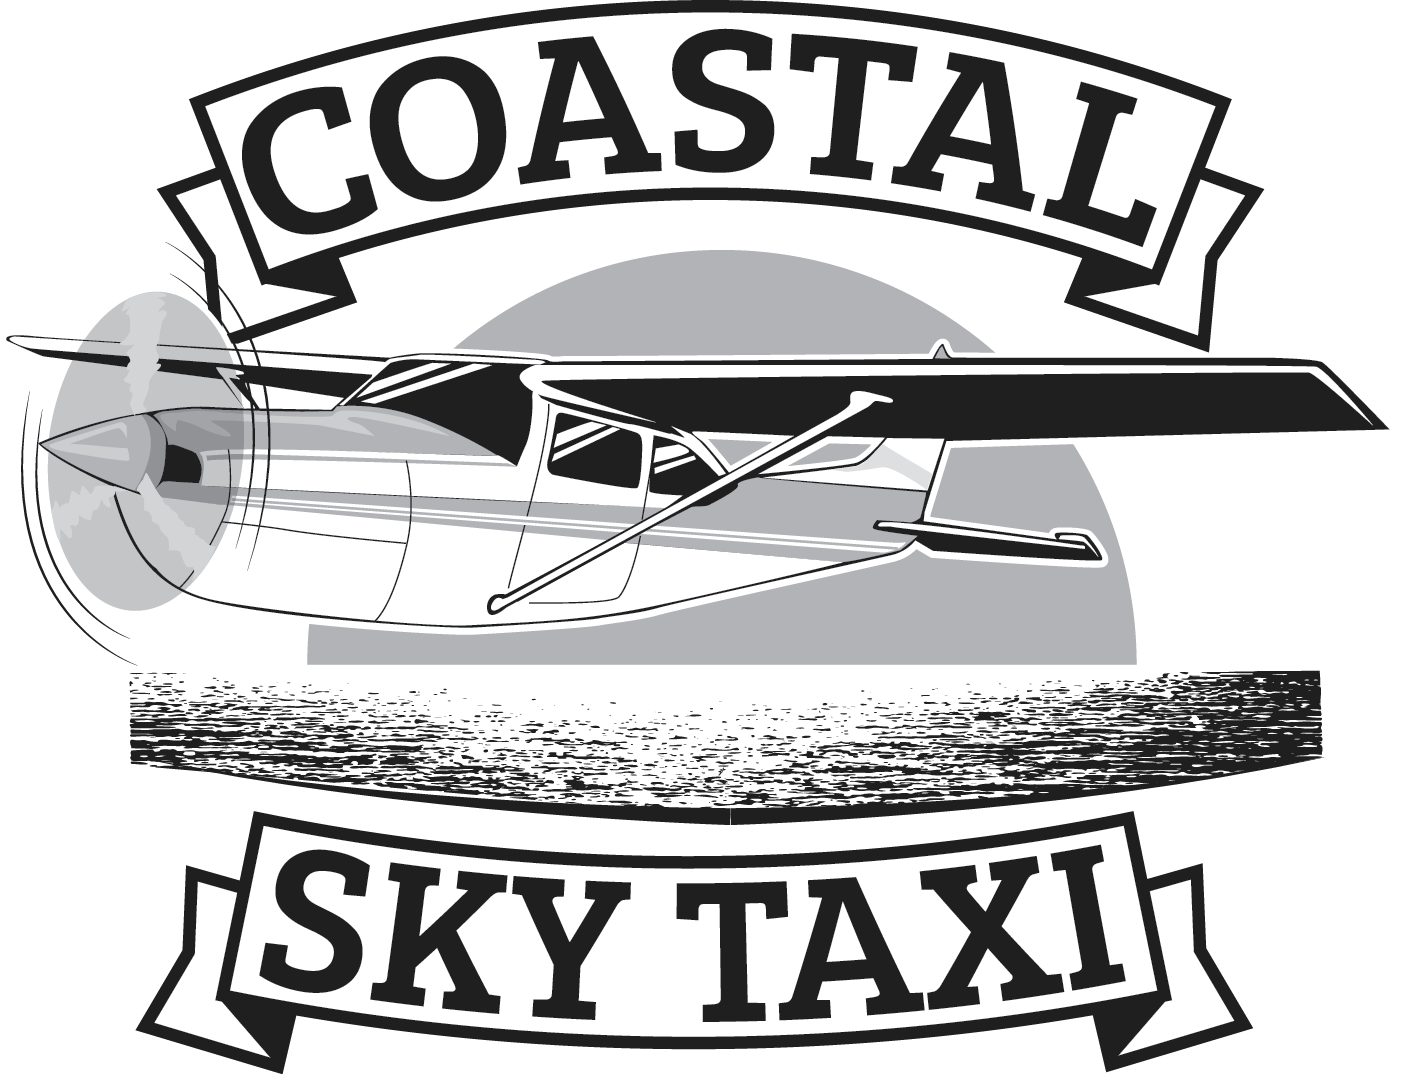 Coastal Sky Taxi is a new air charter company that needs a logo featuring a single engine Cessna!!